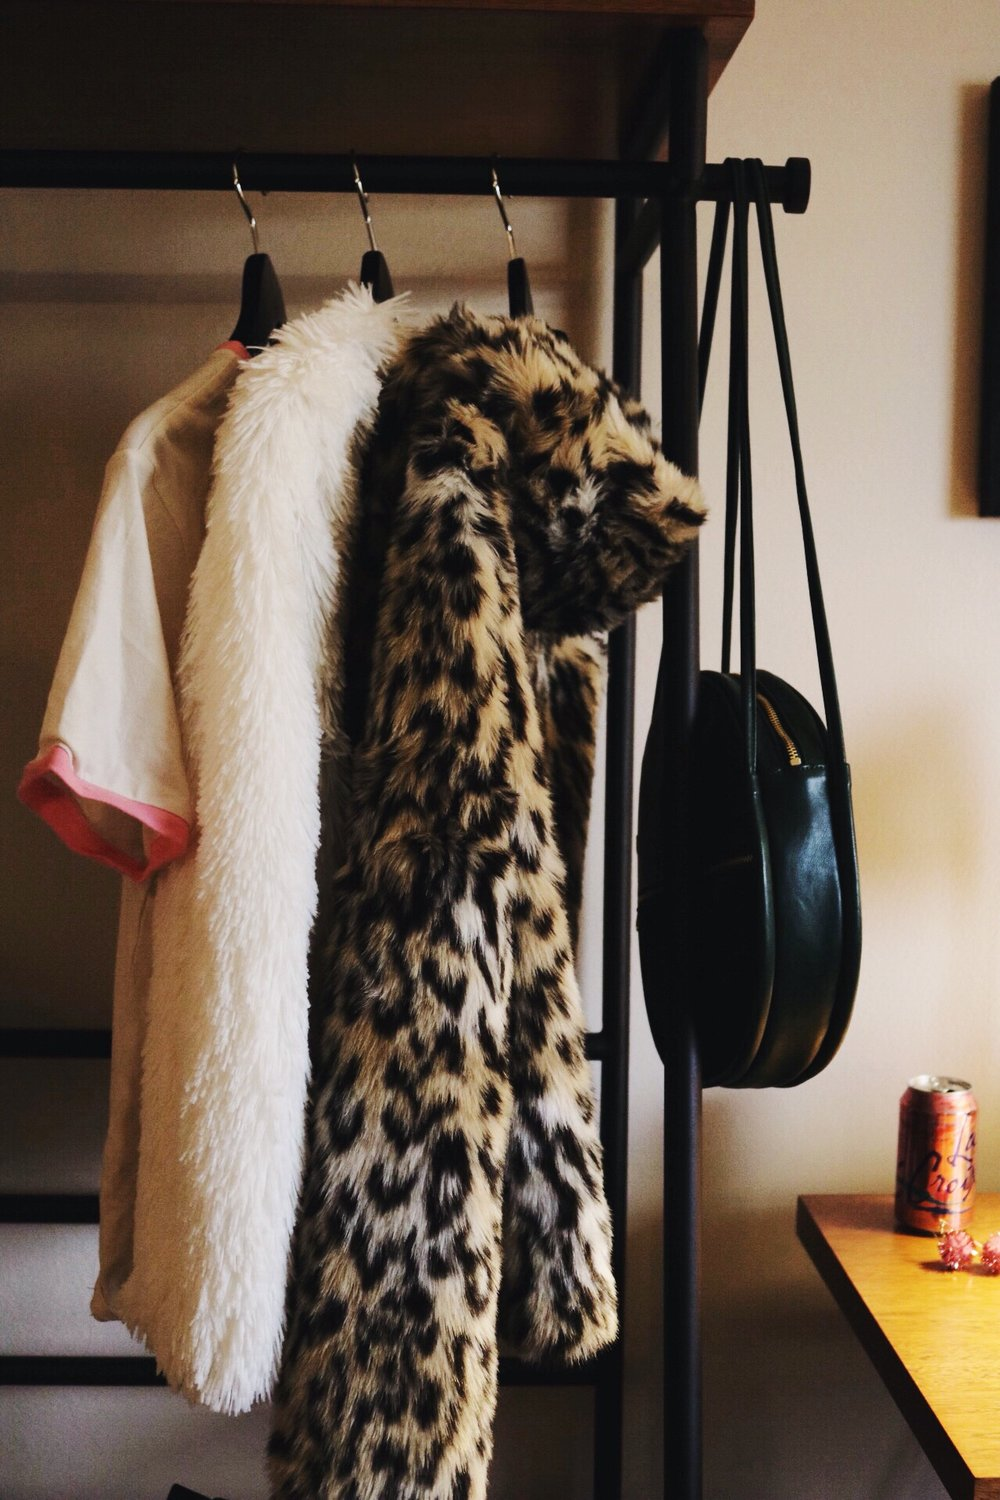 White fur jacket, cheetah jacket, ban.do bag, travel, san francisco hotel